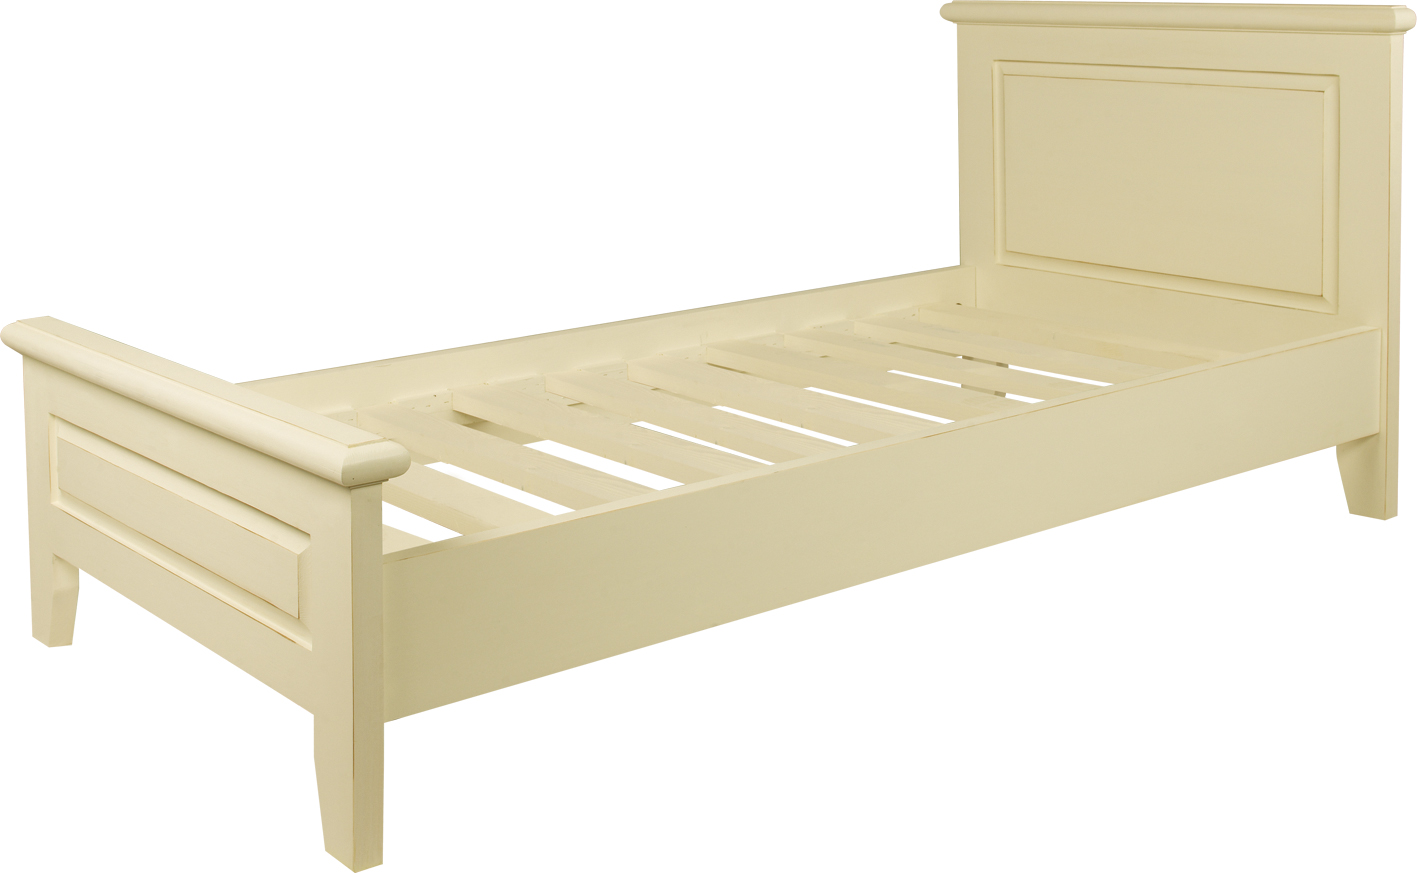 SINGLE BED   w 106 x d 34 x h 52 cm  Mattress Size: w 90 x l 200 cm  €815  Product Code: BL-3249  This piece may be orderedin any of the Heritage colours and finishes.